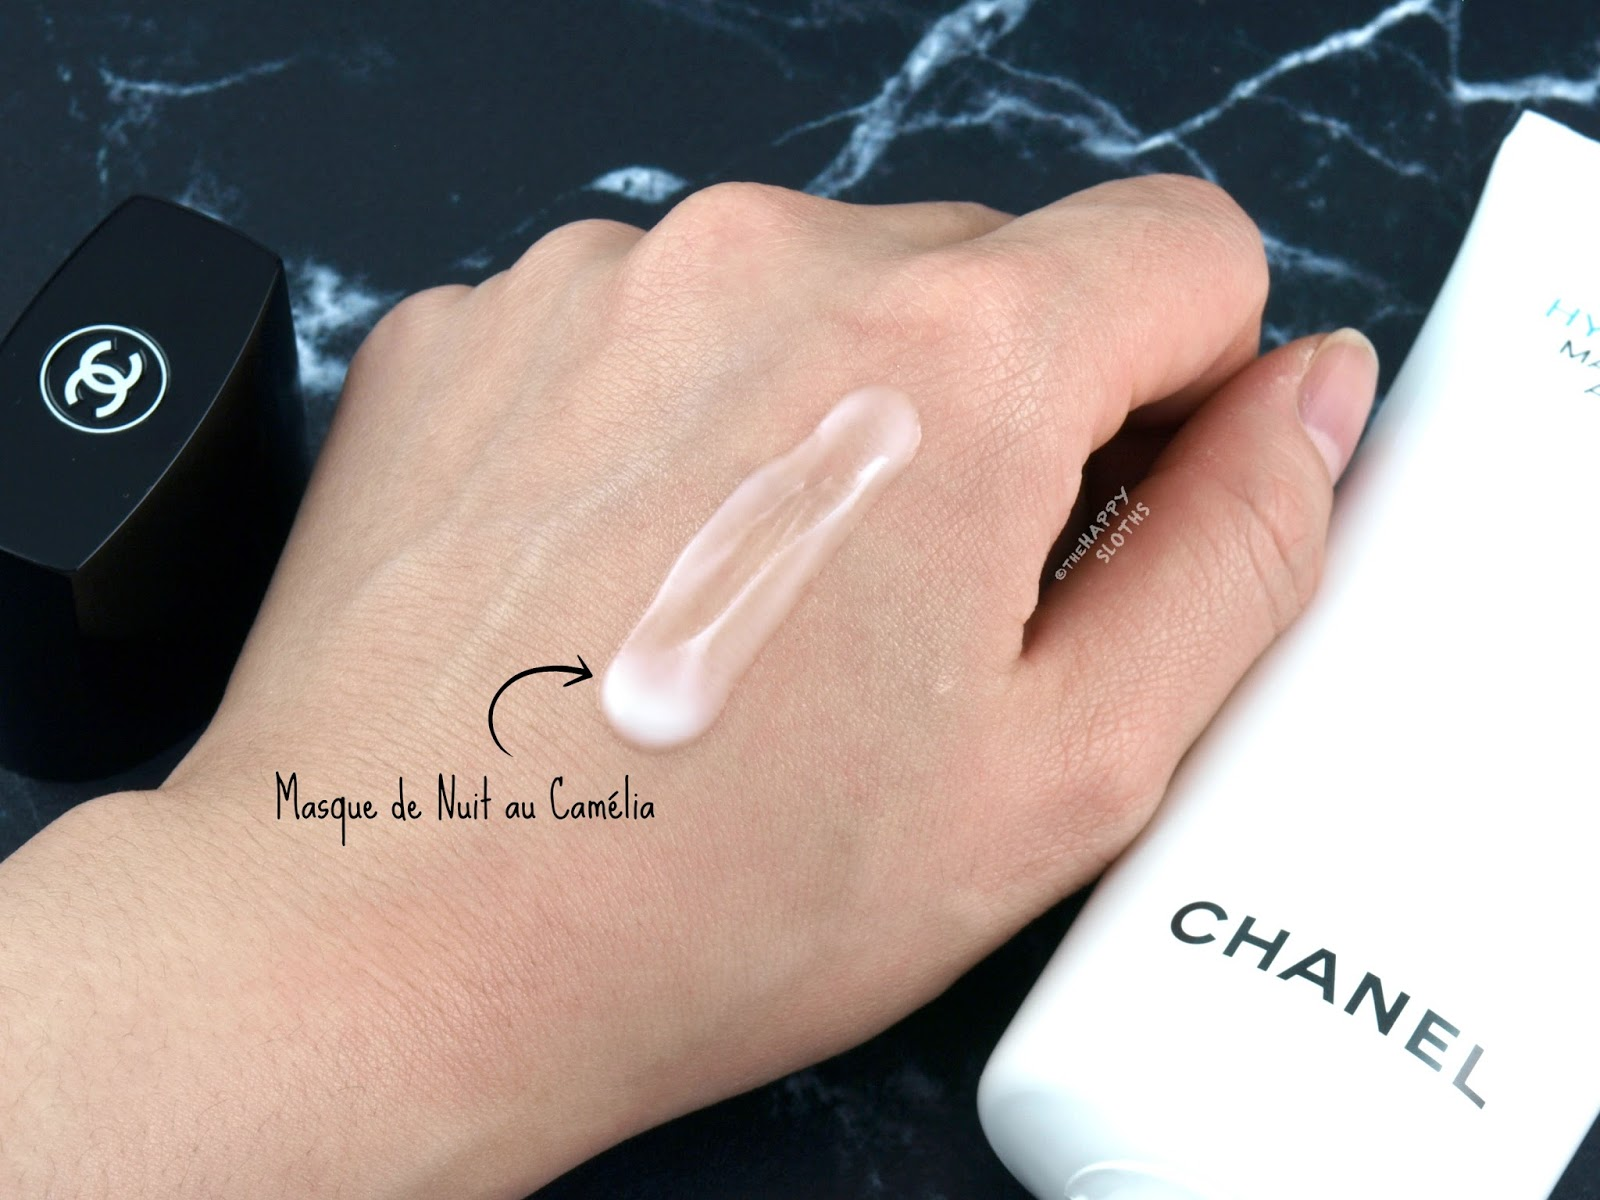 Chanel | Hydra Beauty Masque de Nuit au Camélia: Review